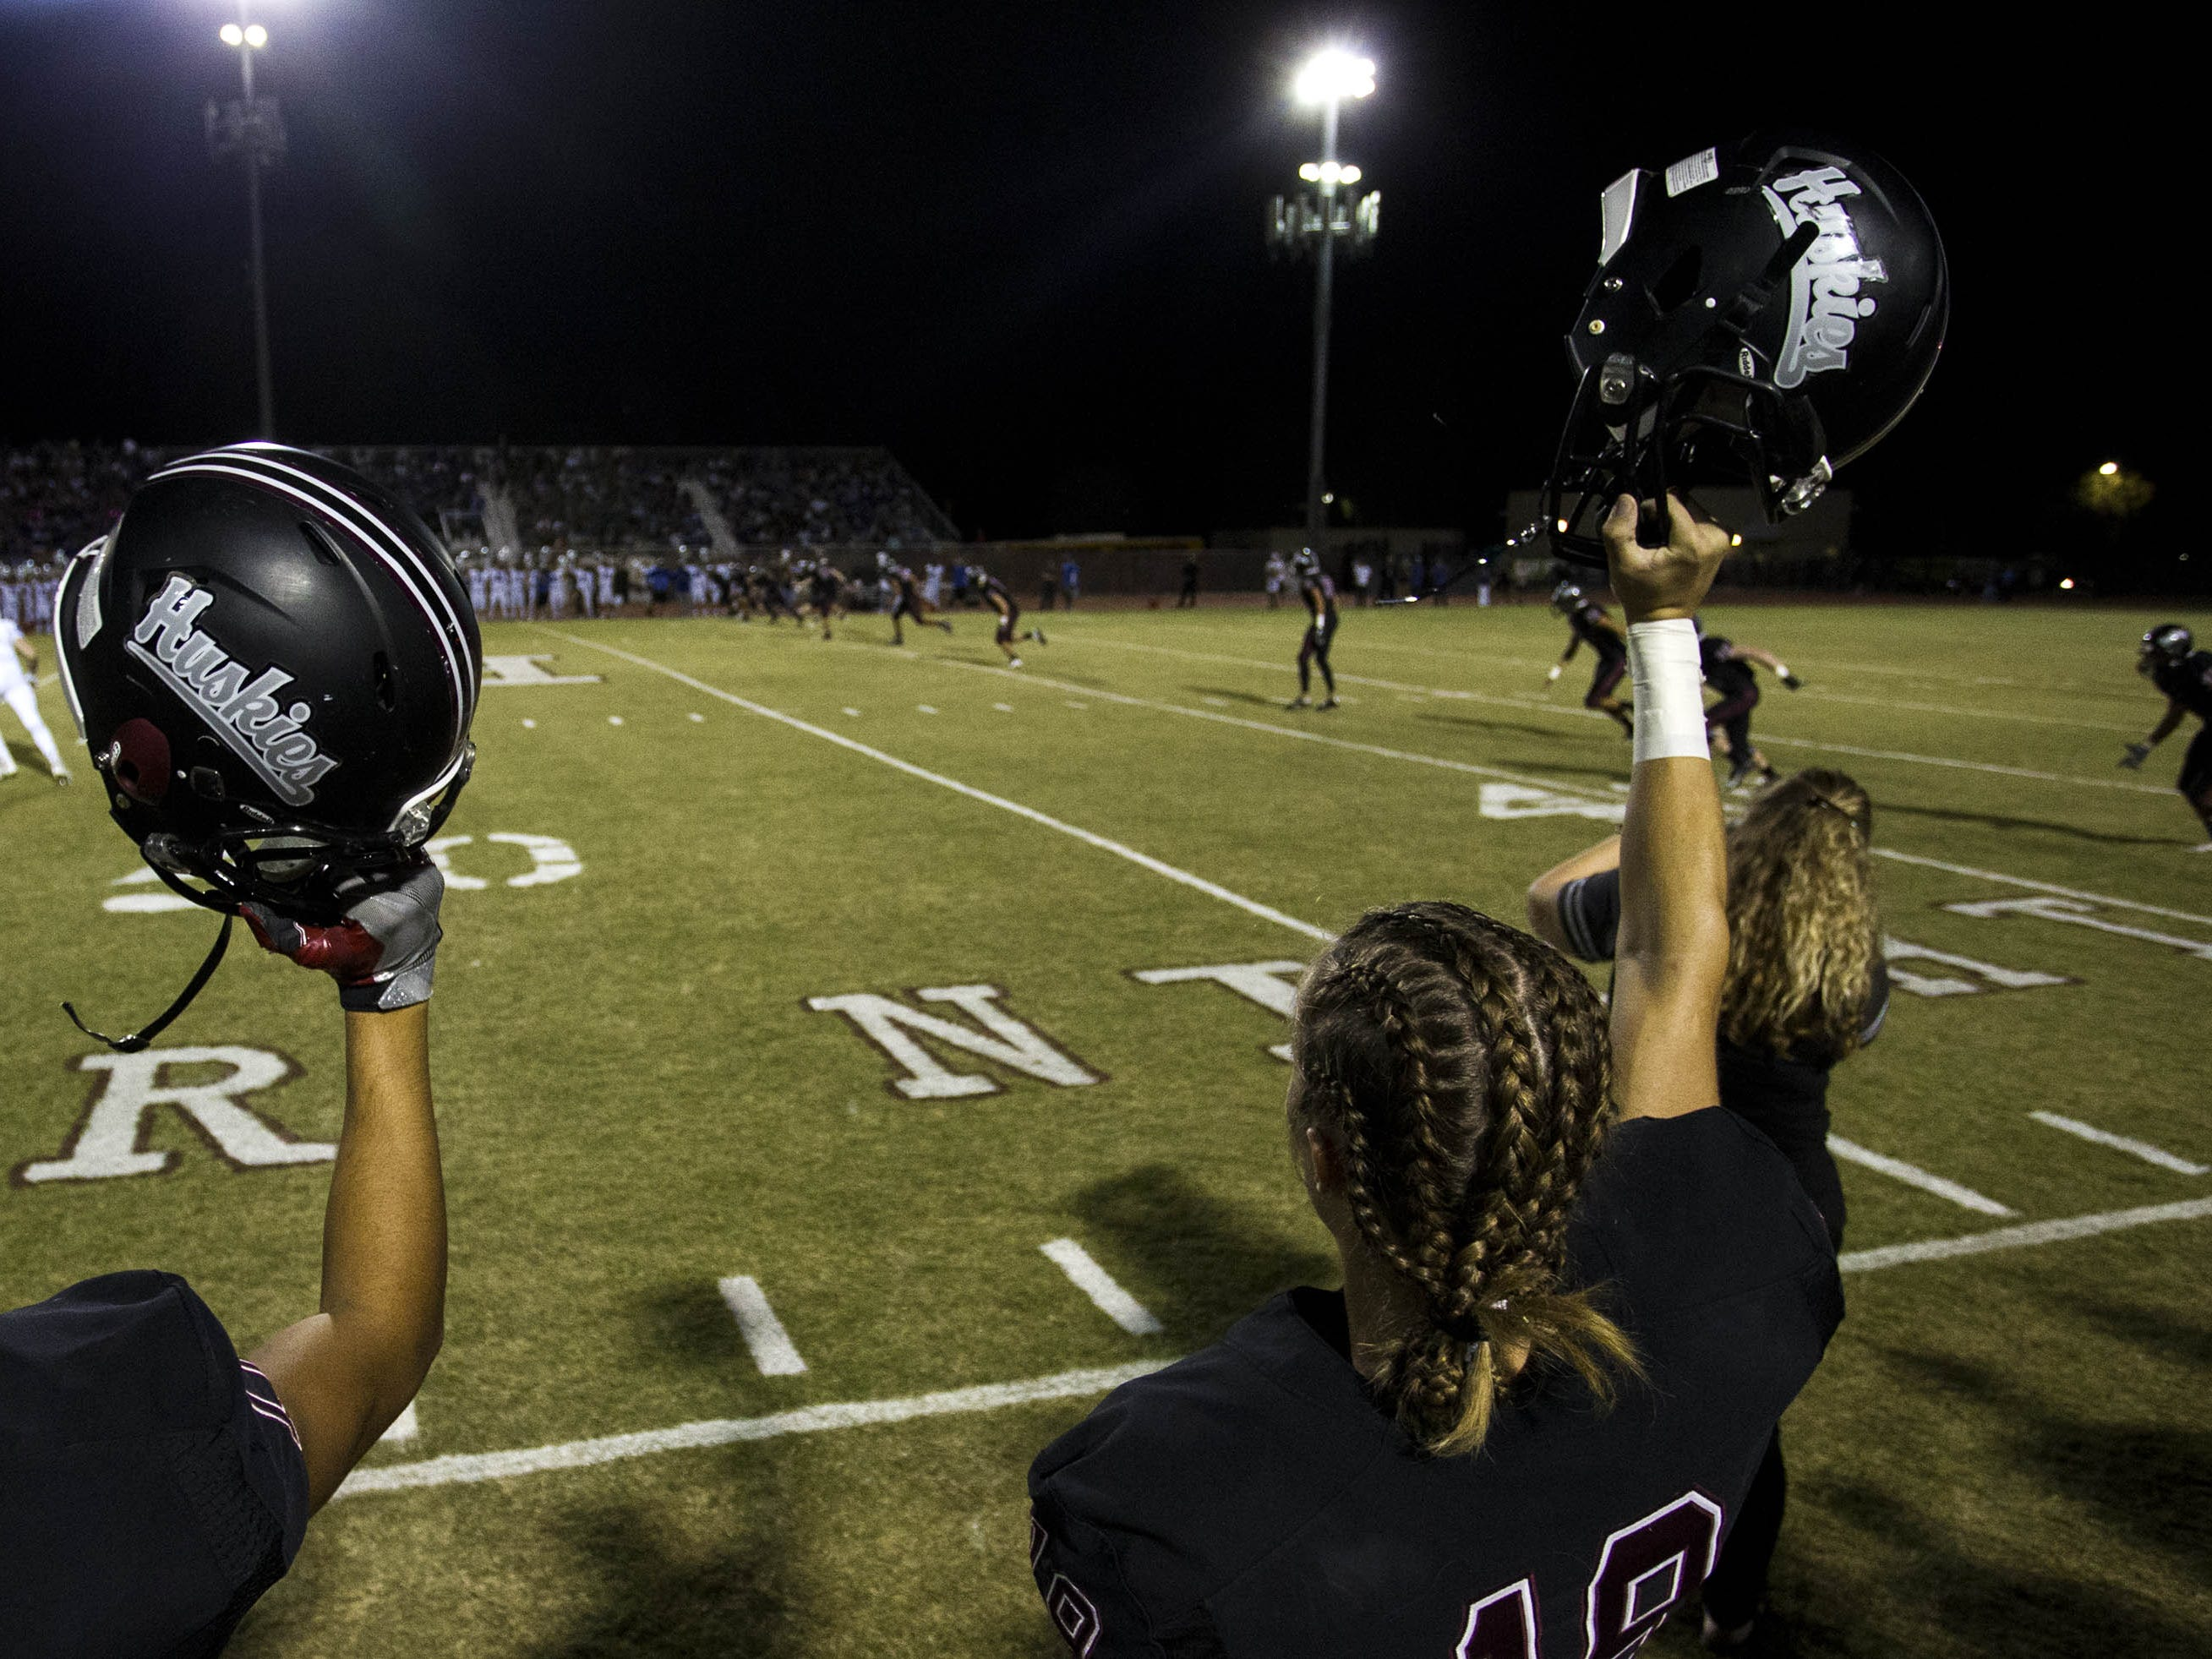 Hamilton players hold their helmets up as the opening game kickoff gets underway with Chandler in Chandler, Friday, Oct. 26, 2018. #azhsfb